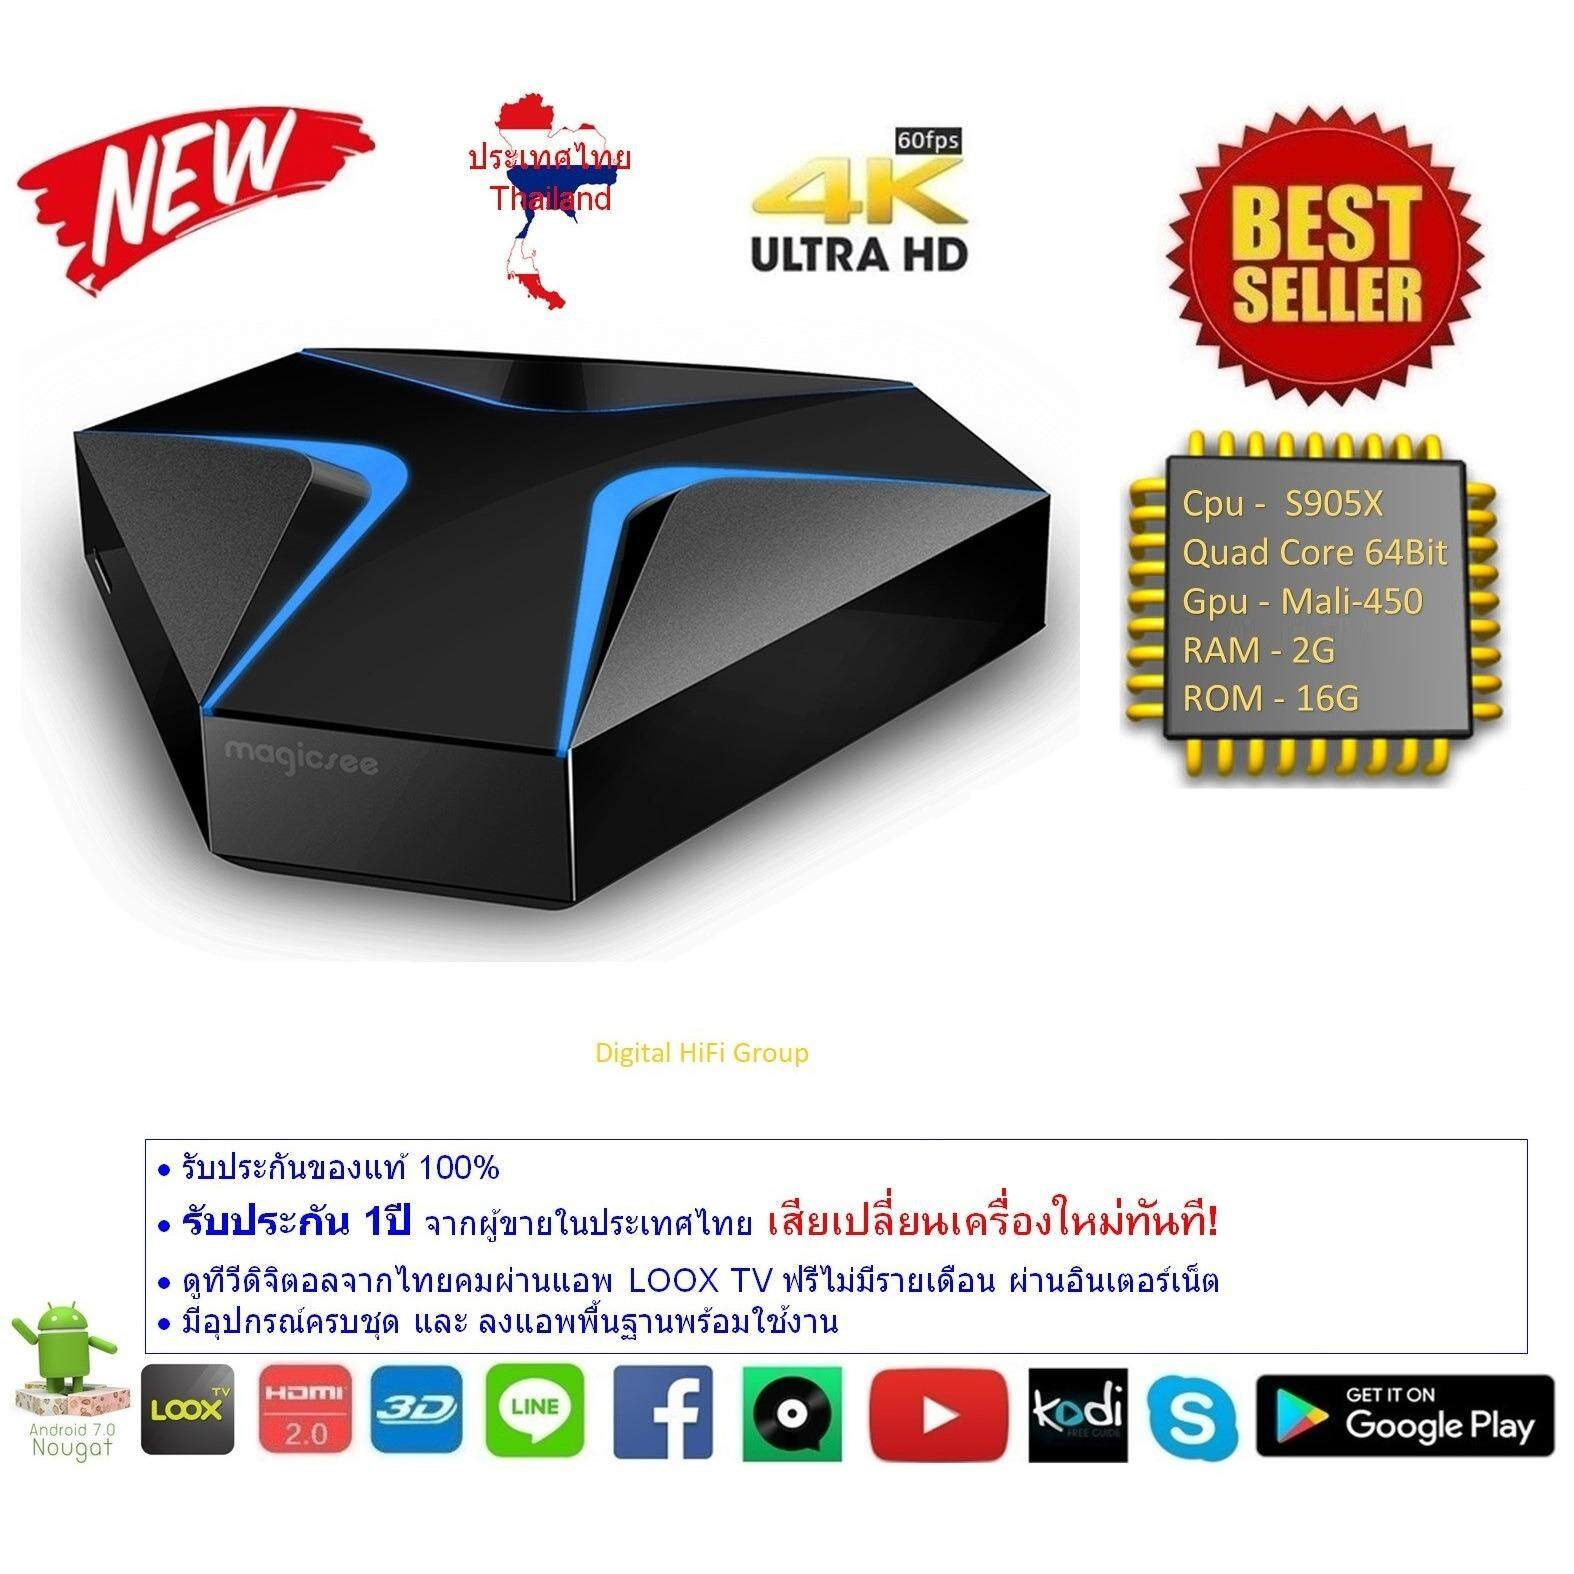 ขาย Android Smart Tv Box Magicsee Iron Cpu S905X Ram 2G Rom 16G Uhd 4K Android Nougat 7 1 2 ออนไลน์